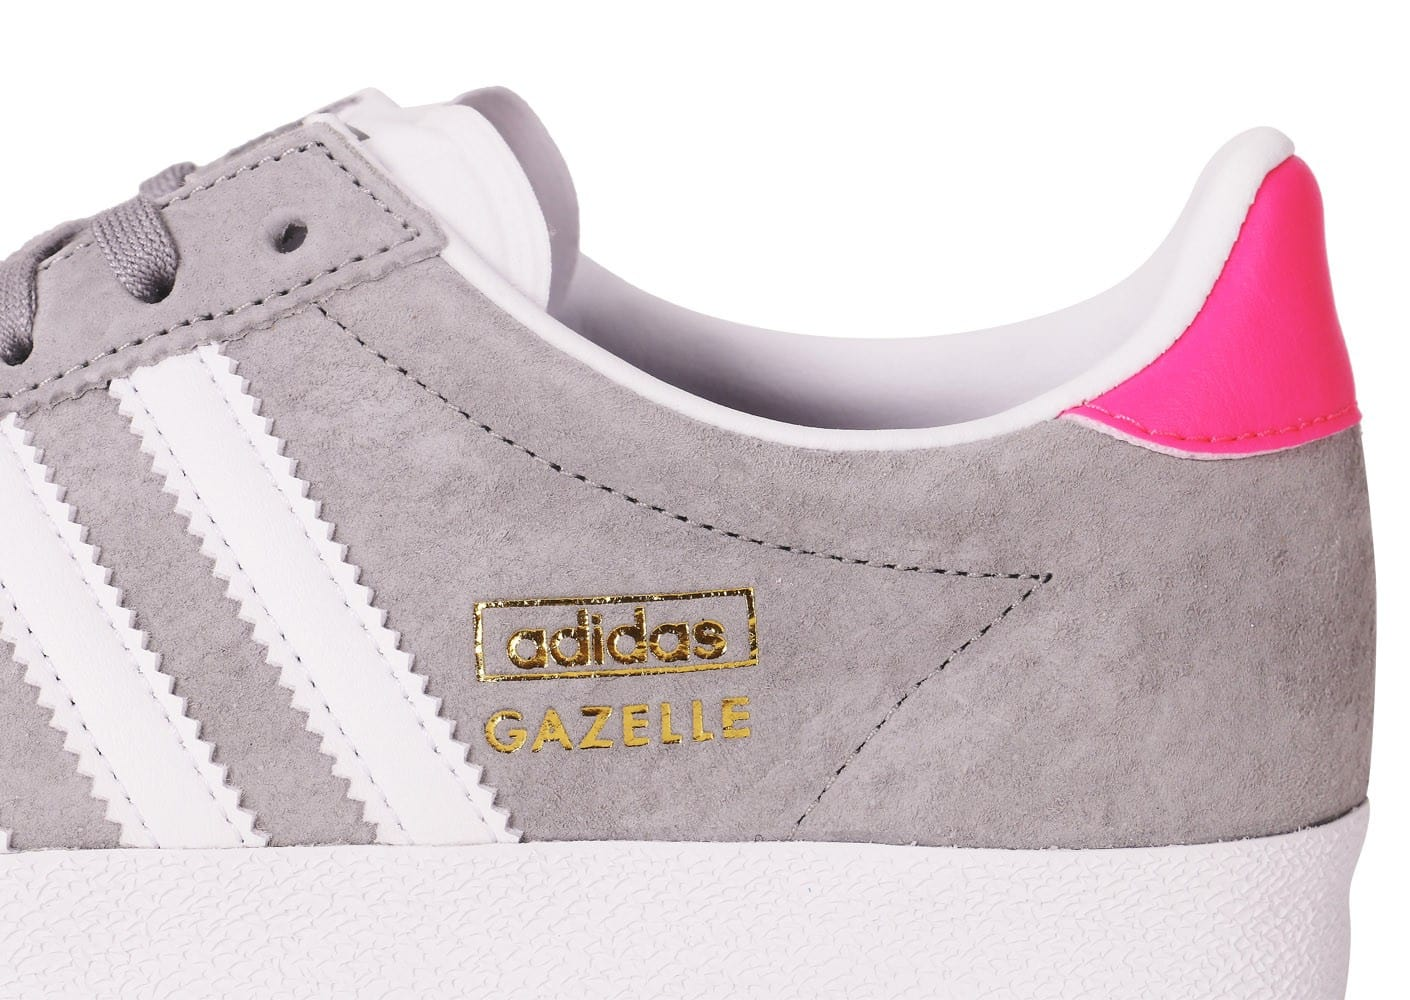 reputable site 9e933 f2a90 ... Chaussures adidas Gazelle OG grise et rose vue dessus